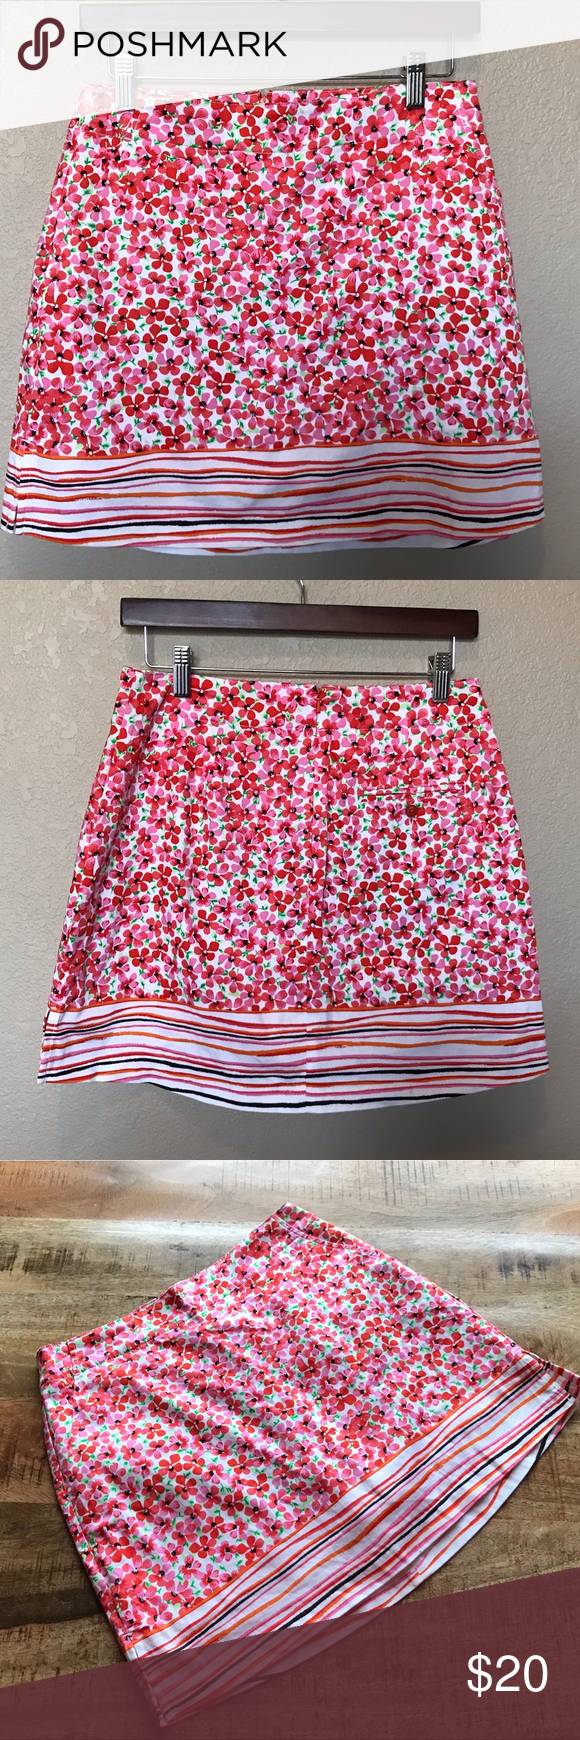 Lady Hagen pink orange flowers tennis skirt 2 XSmall  Shorts   Good condition no…